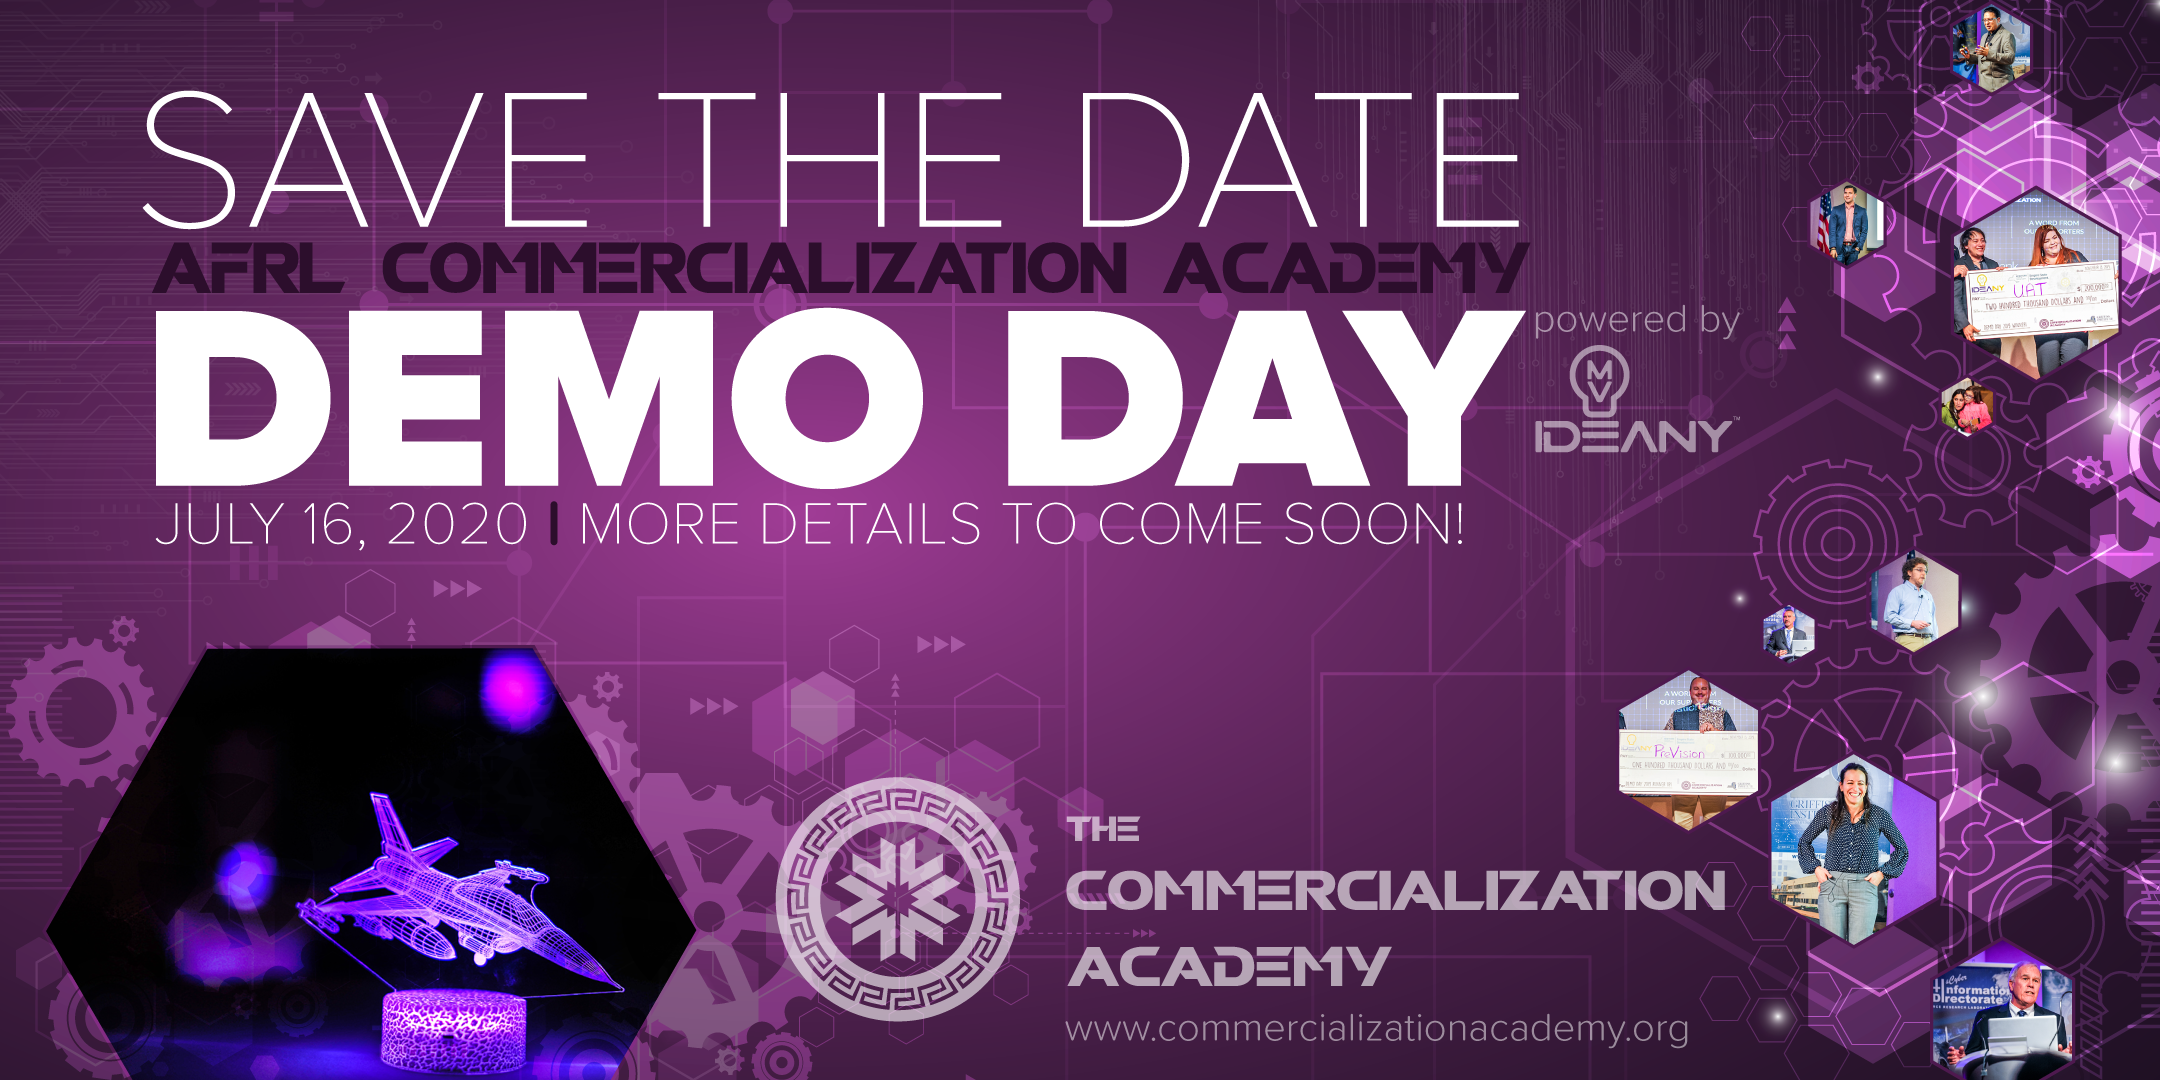 Save the Date! Demo Day is July 16, 2020